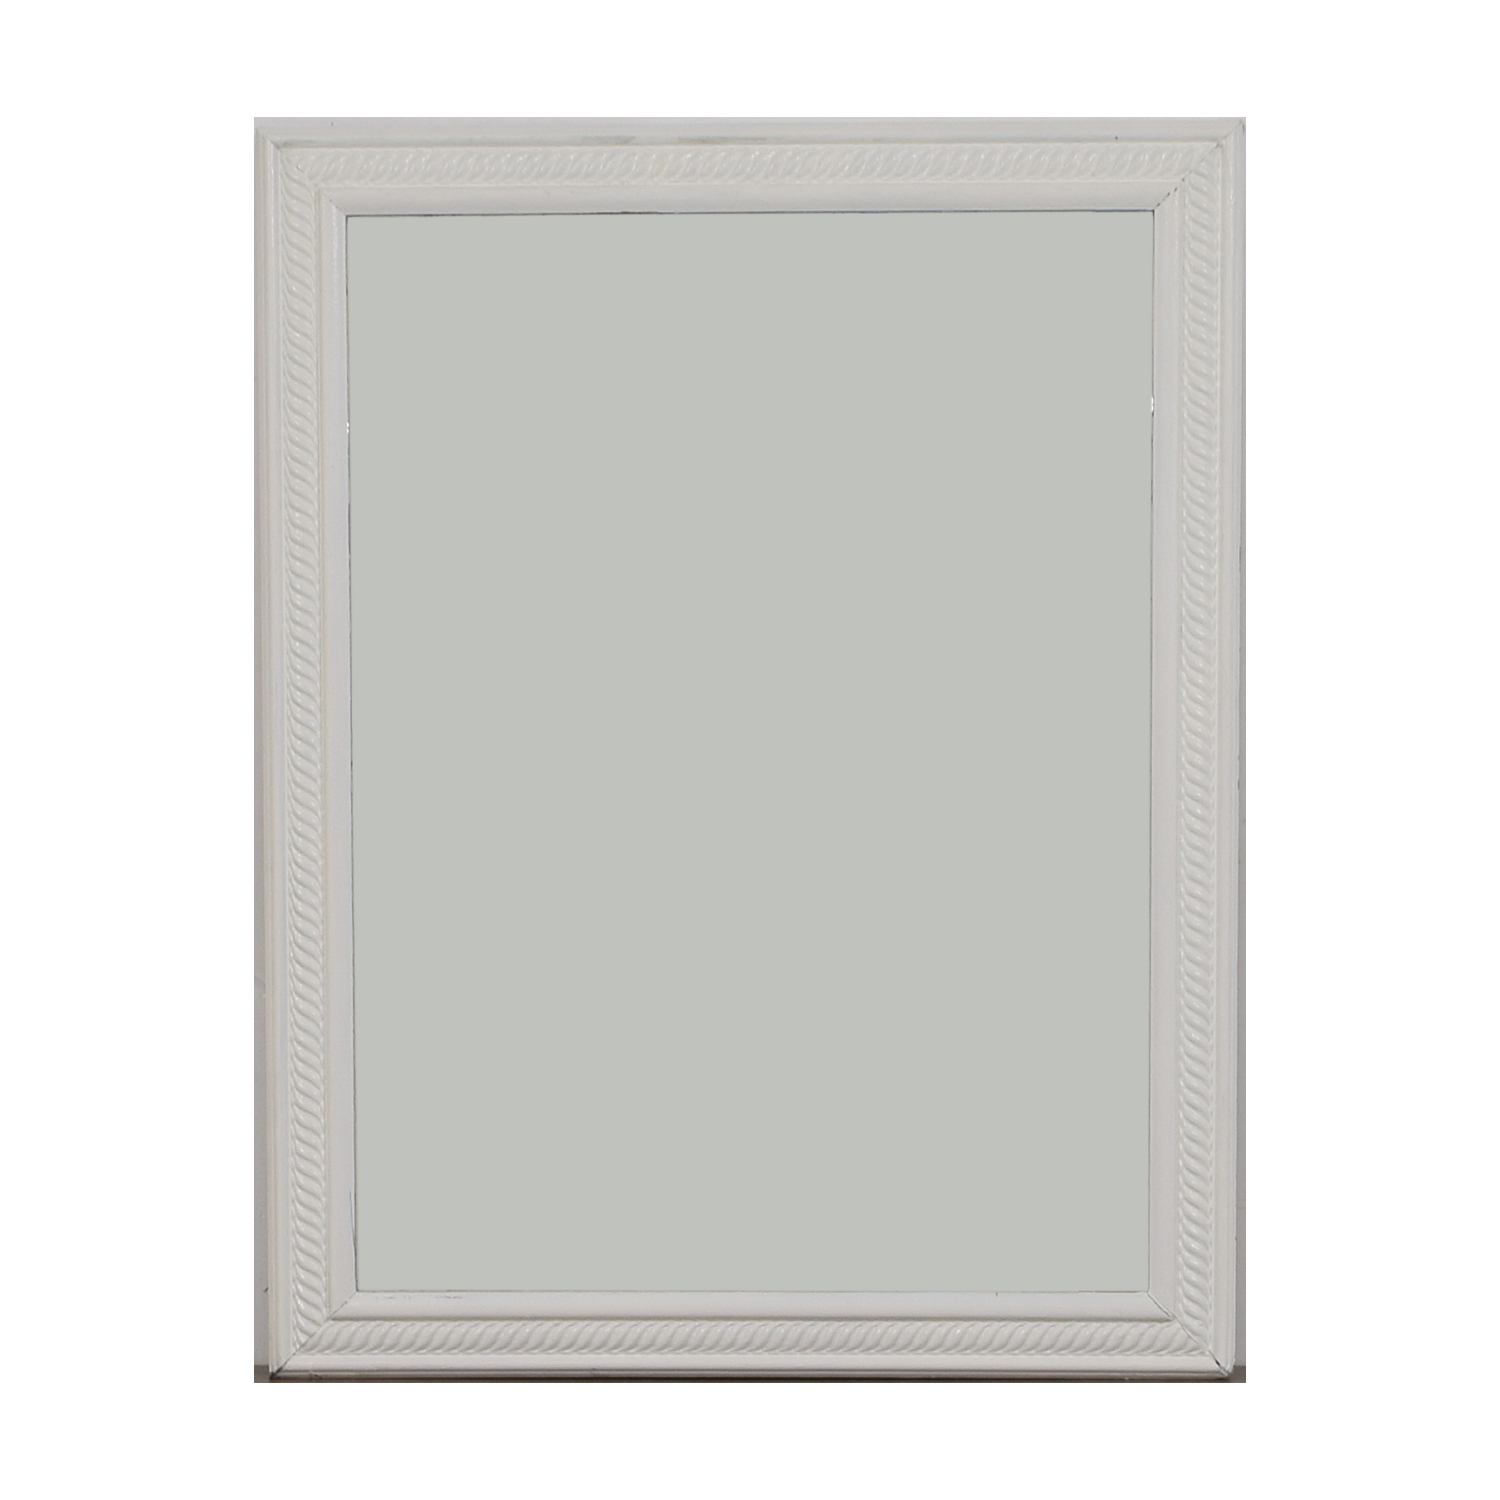 [%79% Off – White Frames Wall Mirror / Decor Intended For Most Popular White Frame Wall Mirrors|white Frame Wall Mirrors Regarding Most Recent 79% Off – White Frames Wall Mirror / Decor|preferred White Frame Wall Mirrors In 79% Off – White Frames Wall Mirror / Decor|2019 79% Off – White Frames Wall Mirror / Decor Intended For White Frame Wall Mirrors%] (View 8 of 20)